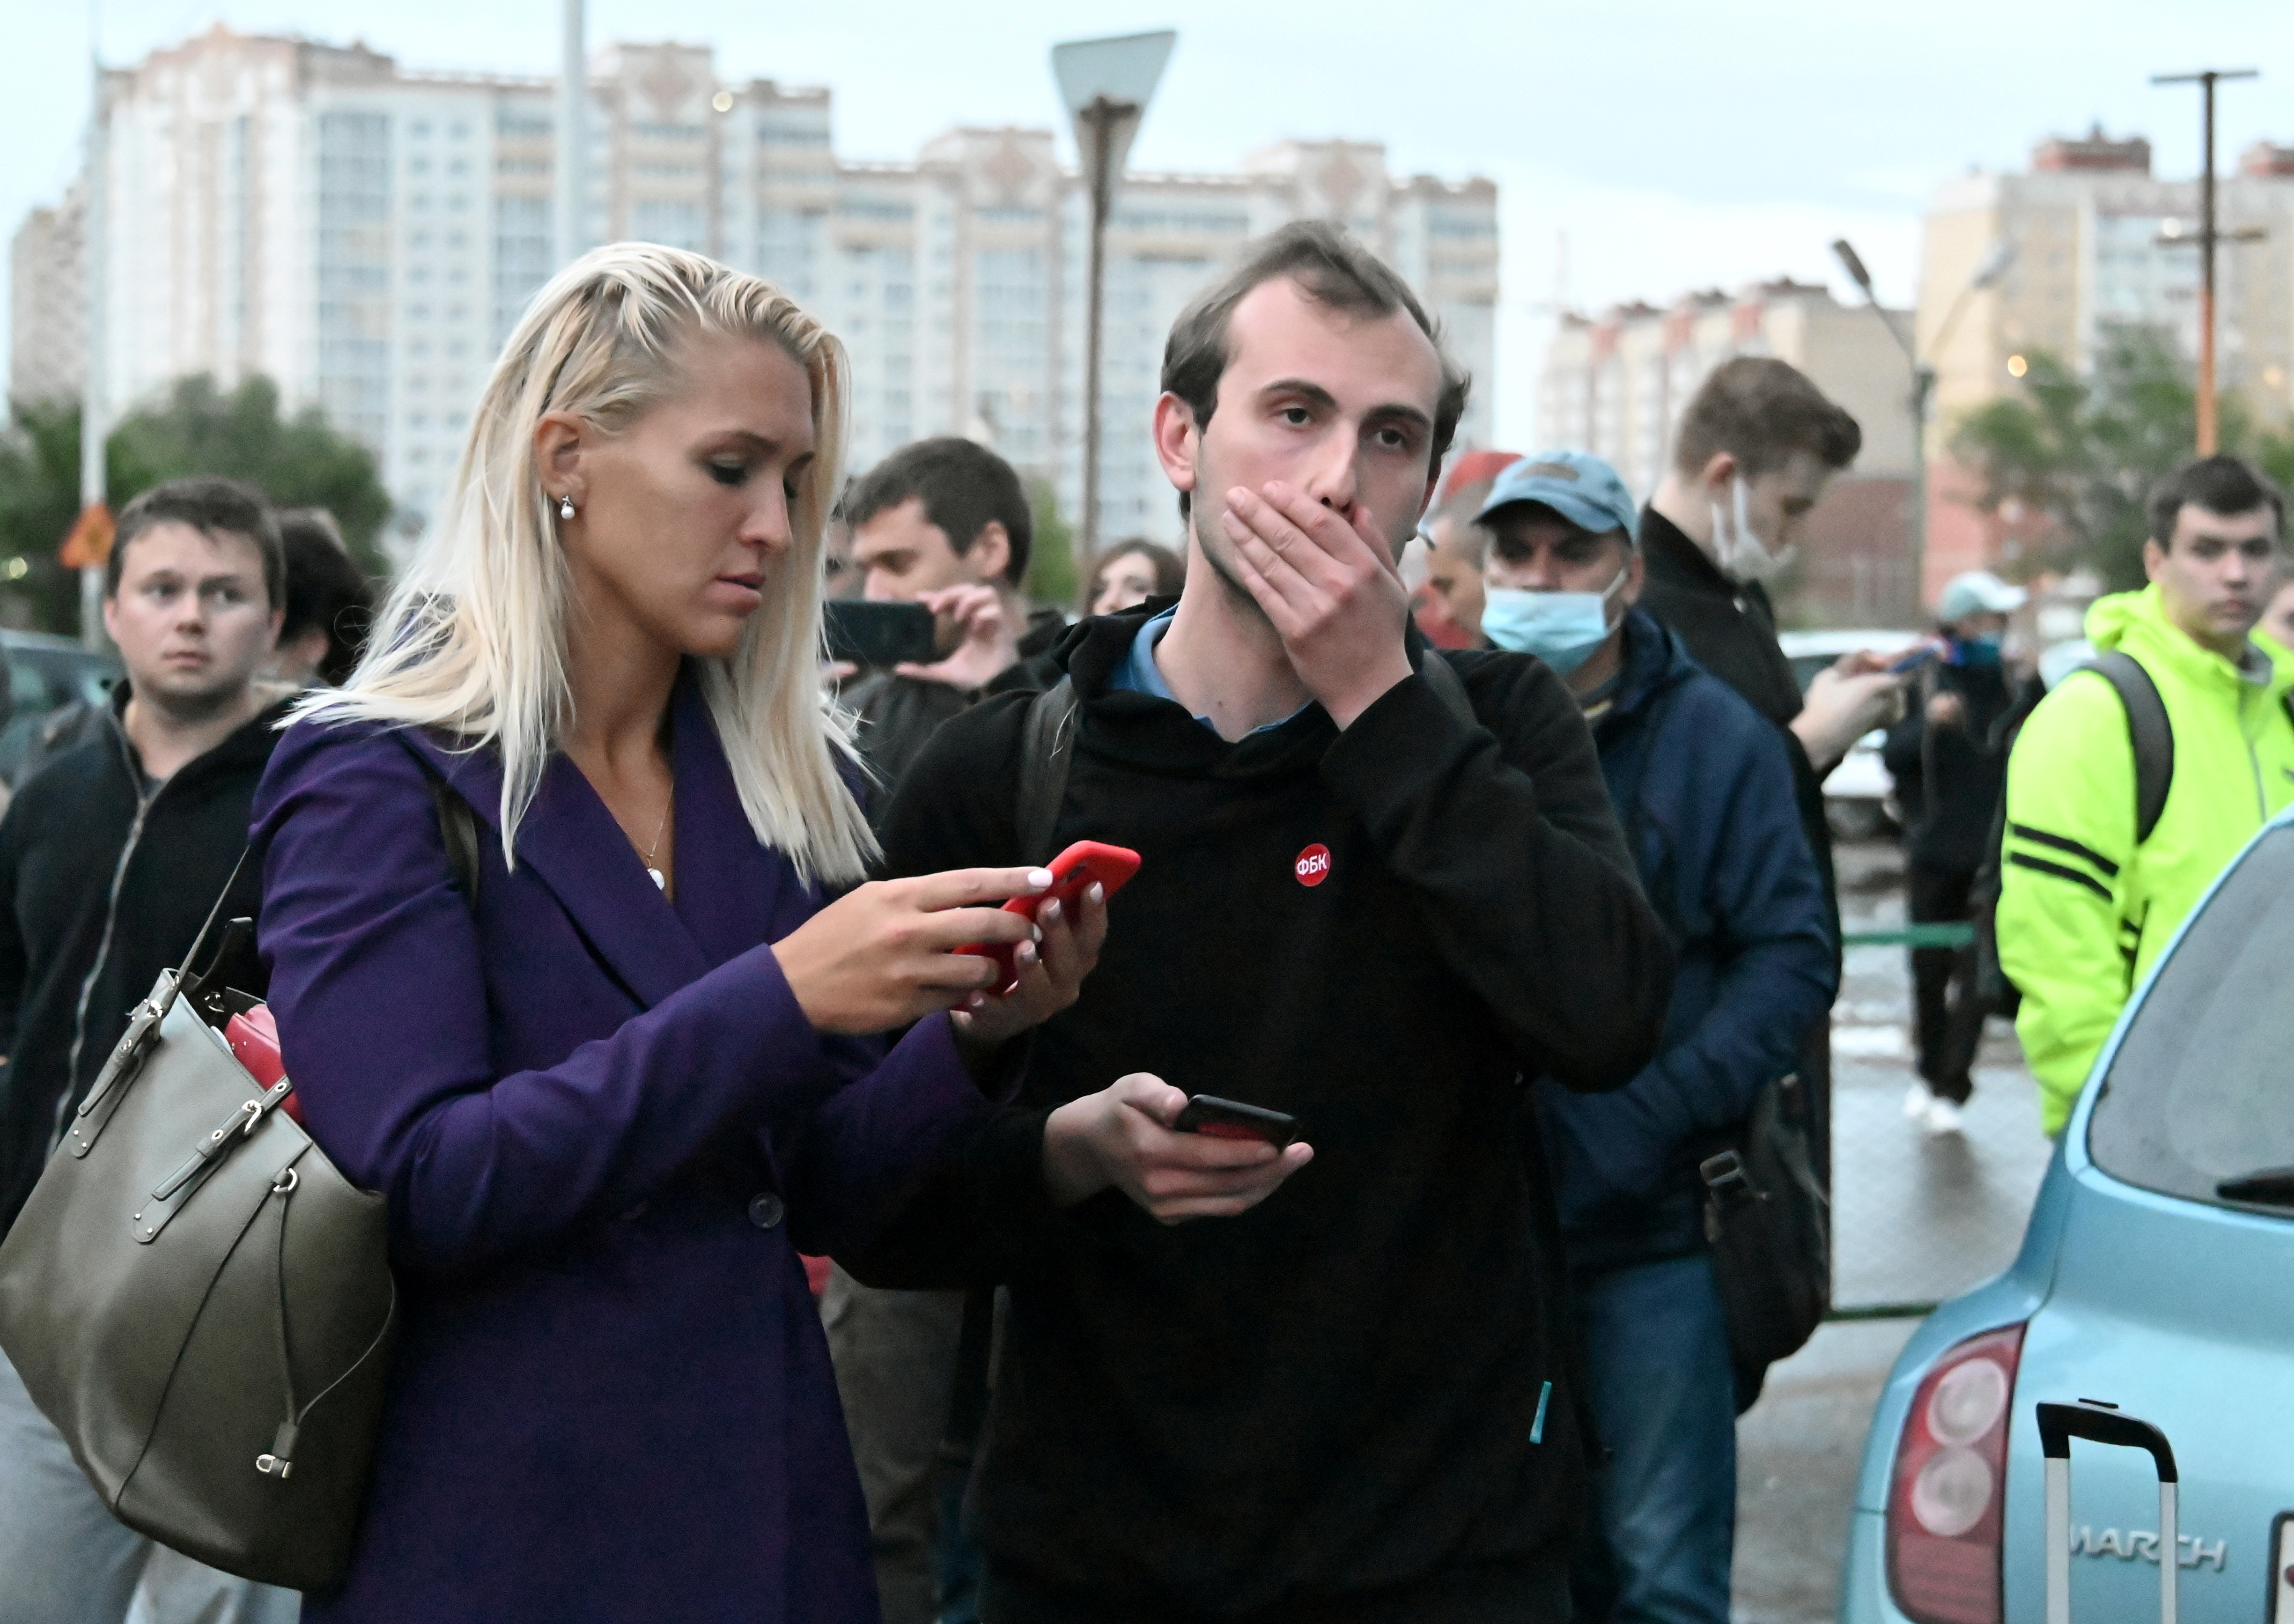 AnastasiaVasilyeva, an ally of Russian opposition politician Alexei Navalny, is seen beside Ilya Pahomov, a project manager atAnti-CorruptionFoundation, as they leave the City Clinical Emergency Hospital Number 1 where Alexei Navalny was admitted after suffering severe symptoms of what his spokeswoman called poisoning, in Omsk, Russia August 20, 2020. REUTERS/Alexey Malgavko/File Photo